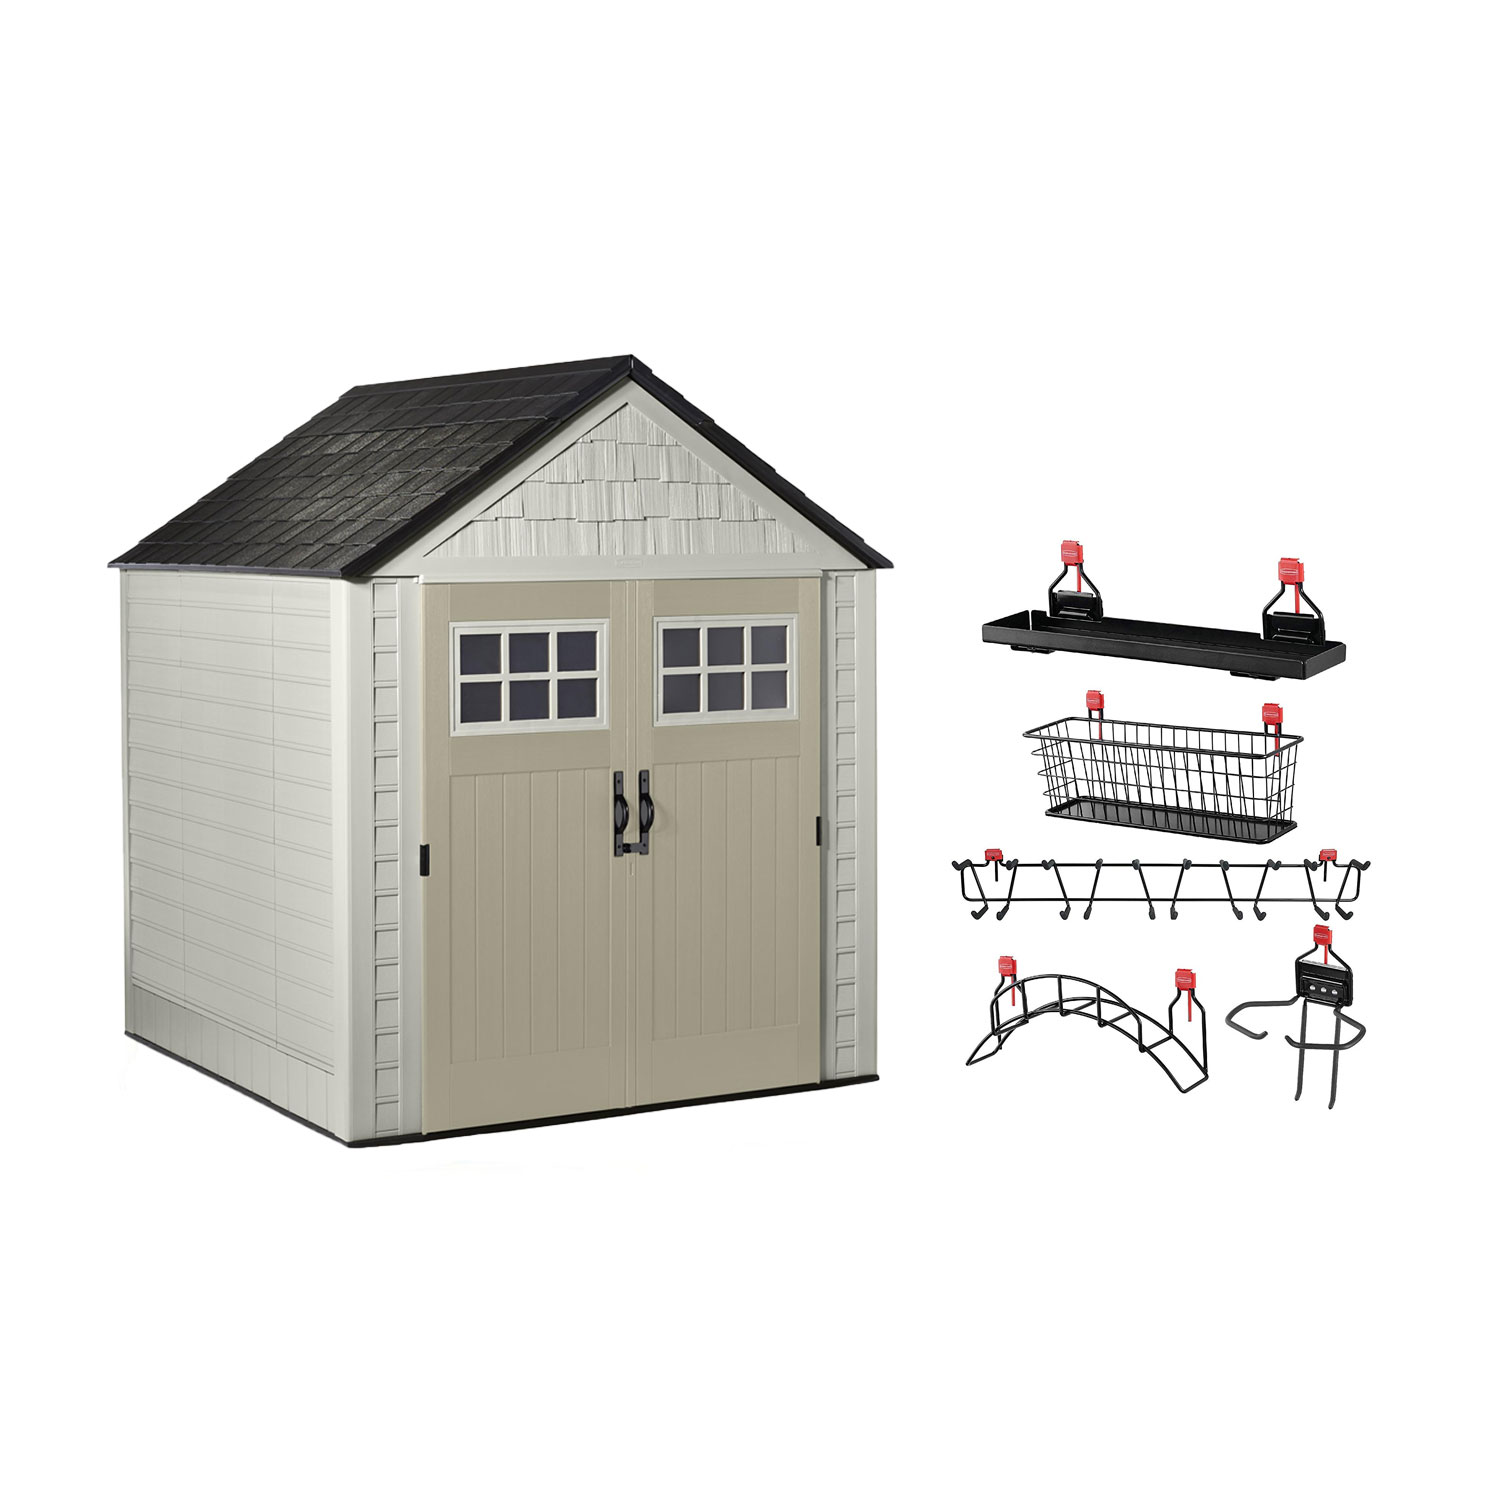 4 Pack Rubbermaid Wall Mounted Storage Shed Small Wire Basket Tool Organizer